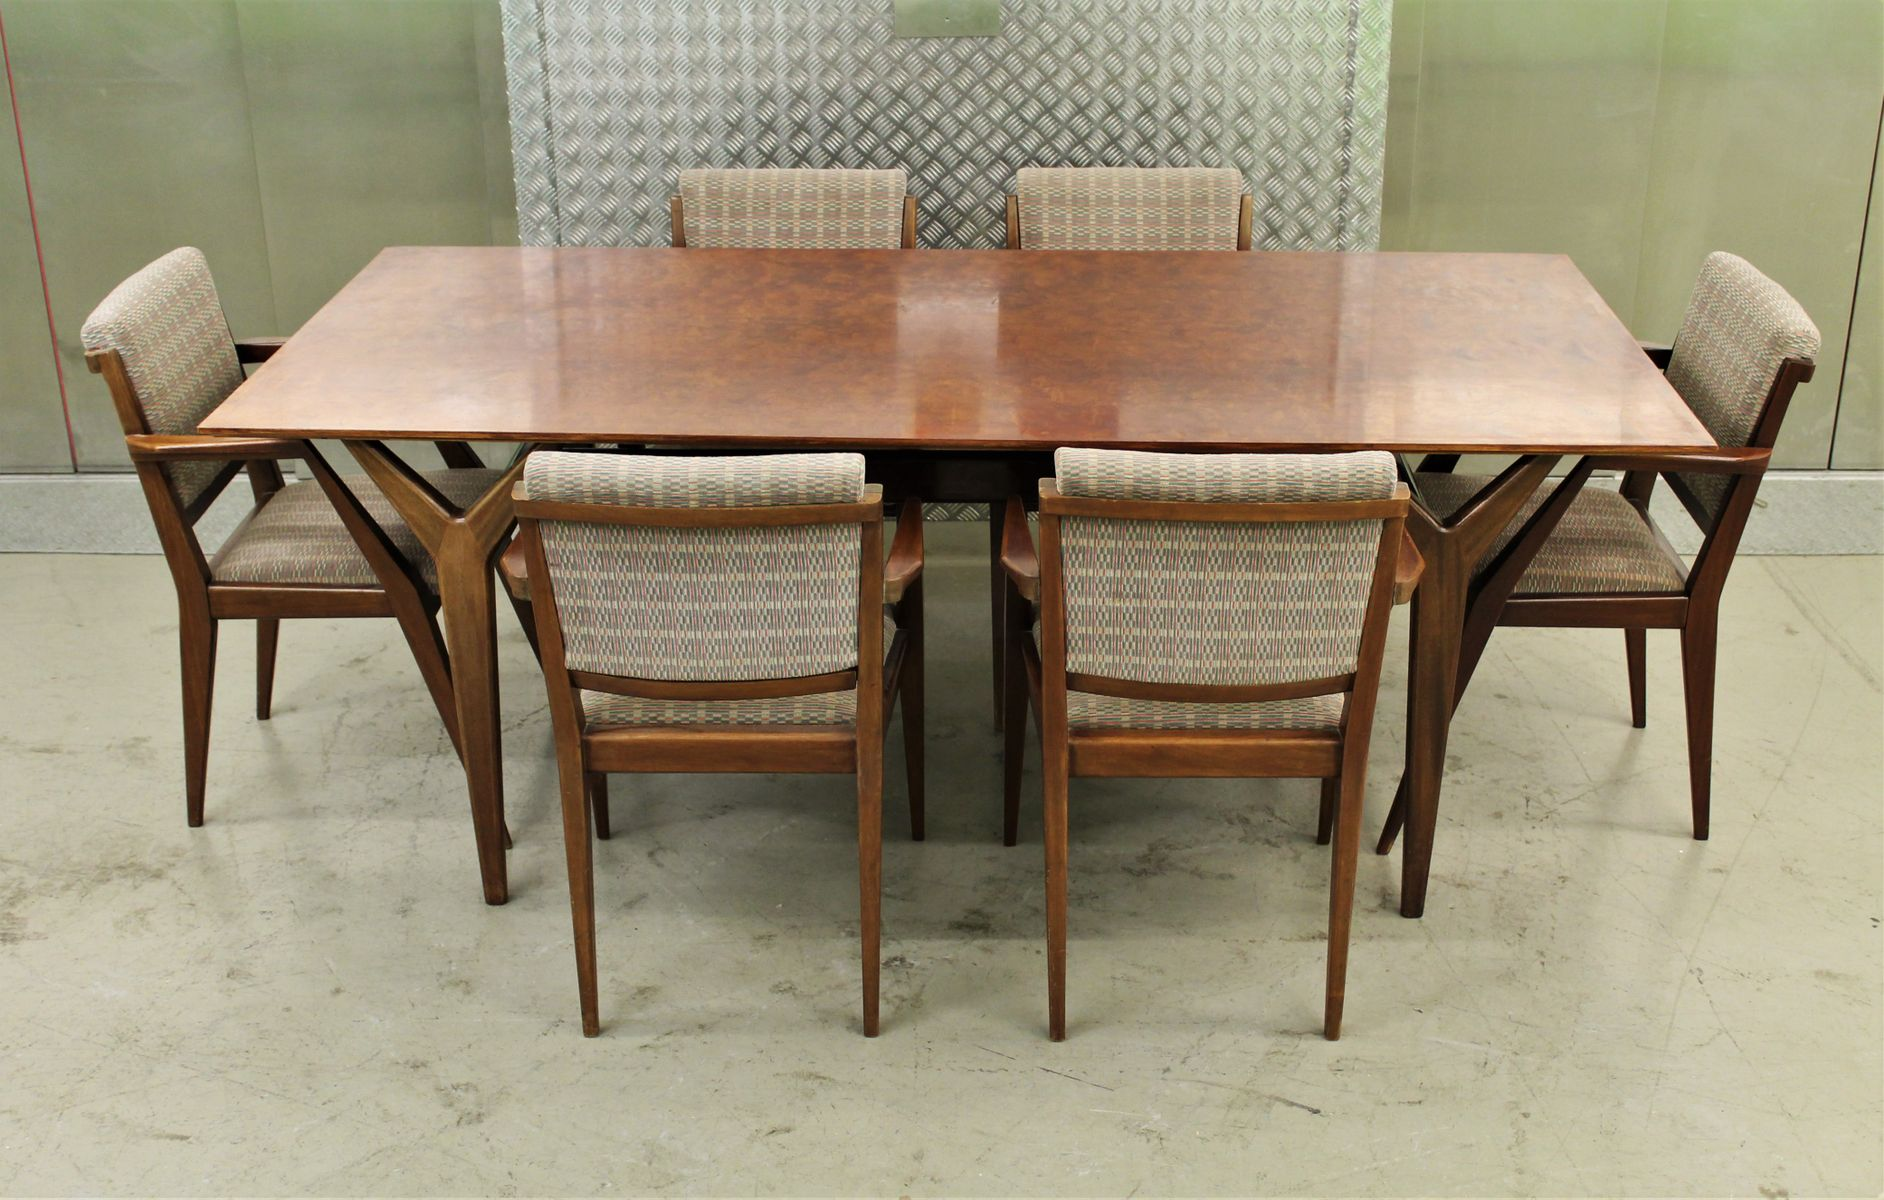 Mid Century Dining Room Set From Heals 1952 For Sale At Pamono